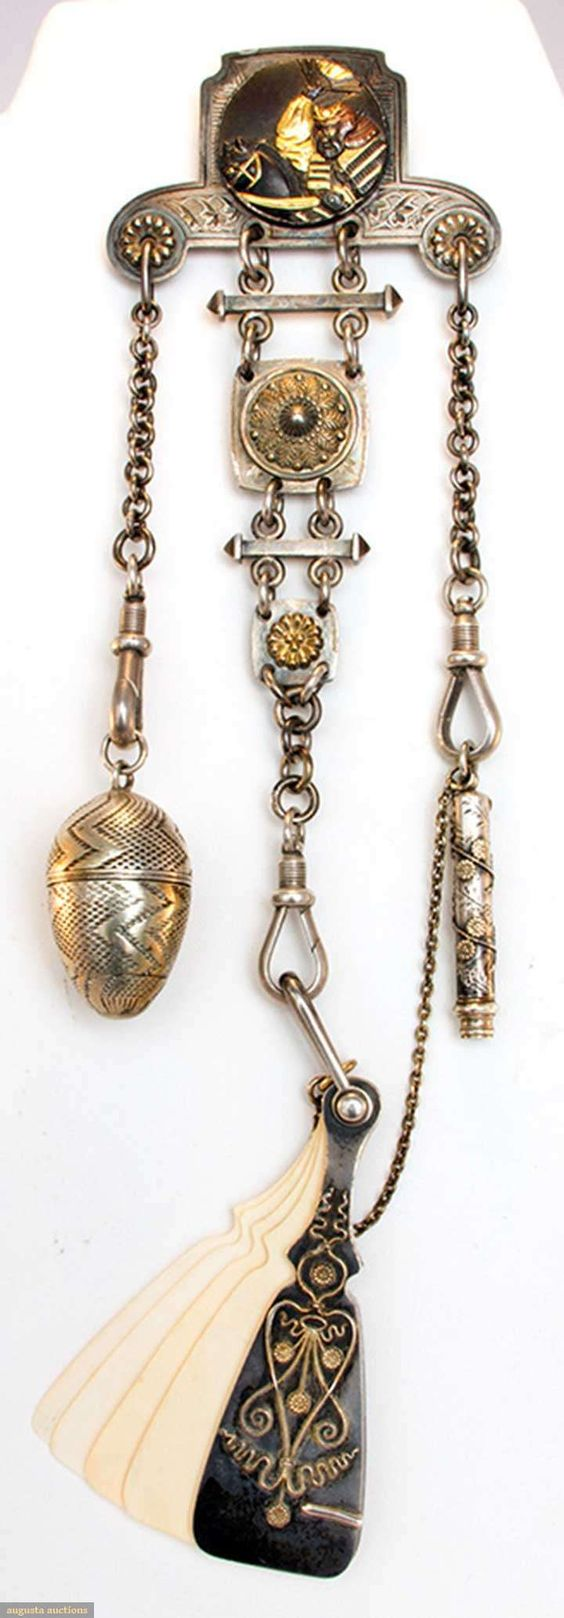 Silver & Gold Chatelaine, Japan, 19th C, Augusta Auctions, April 9, 2014 - NYC, Lot 153